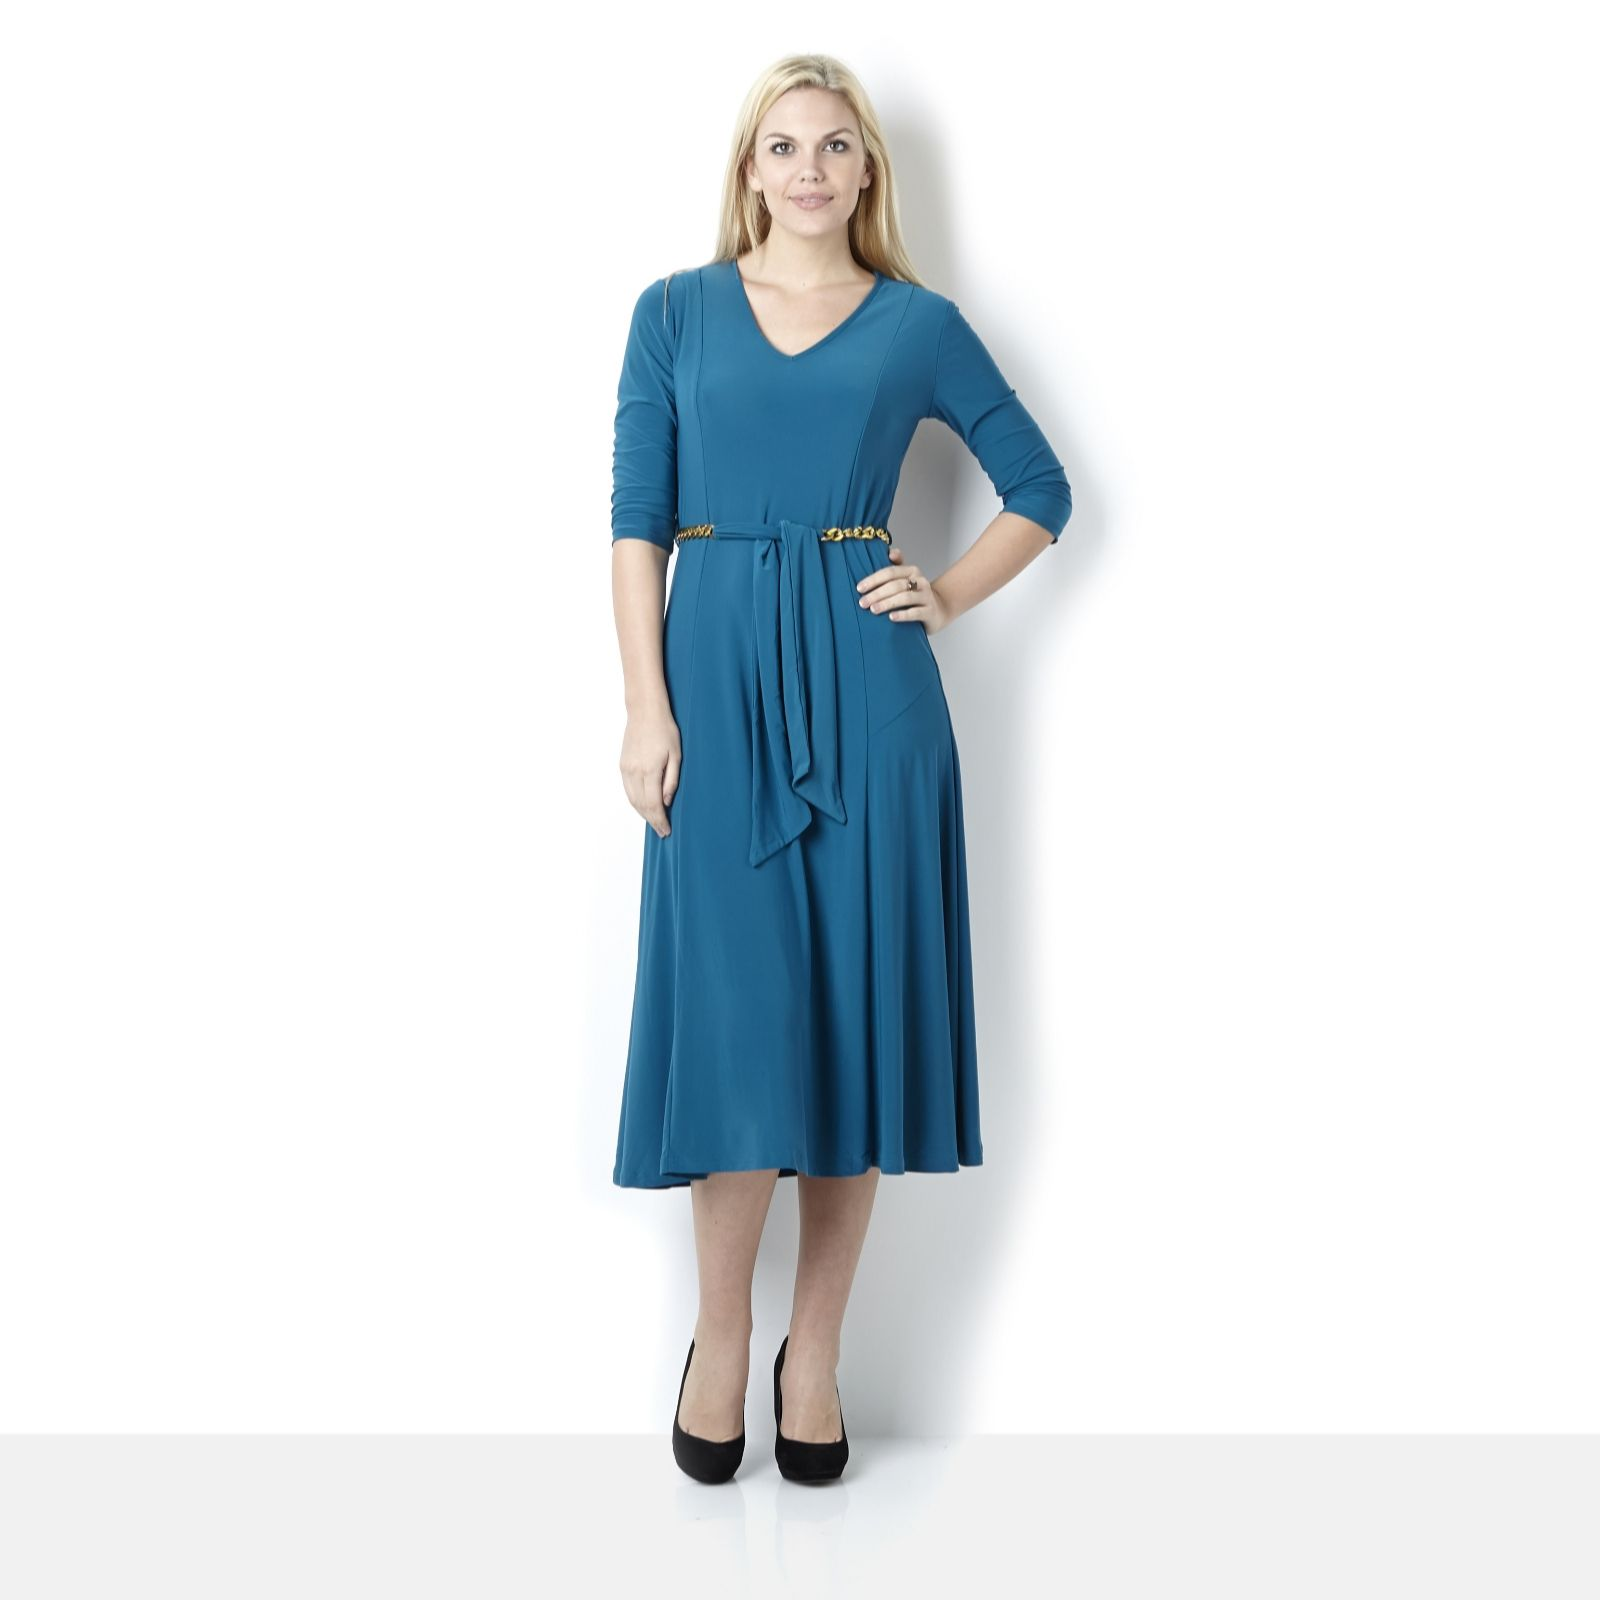 Midi Dresses - QVC UK